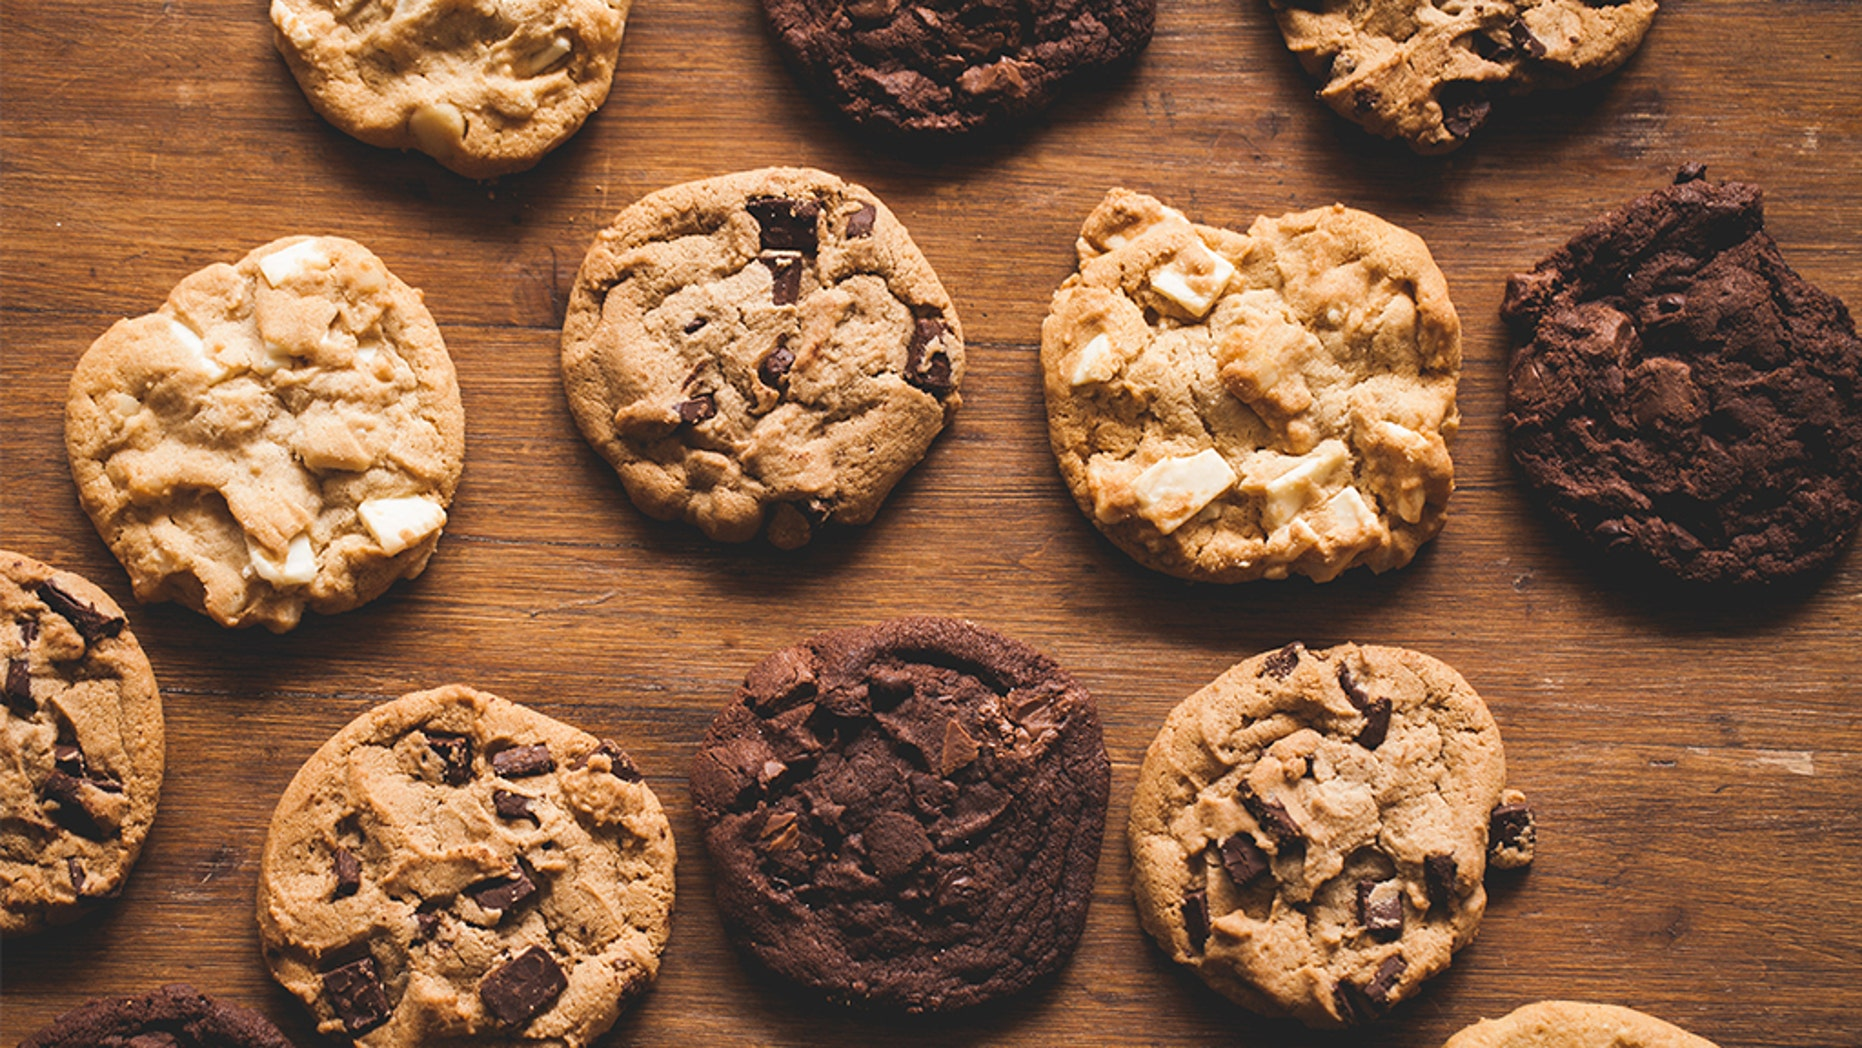 How Dangerous Is Eating Raw Cookie Dough?